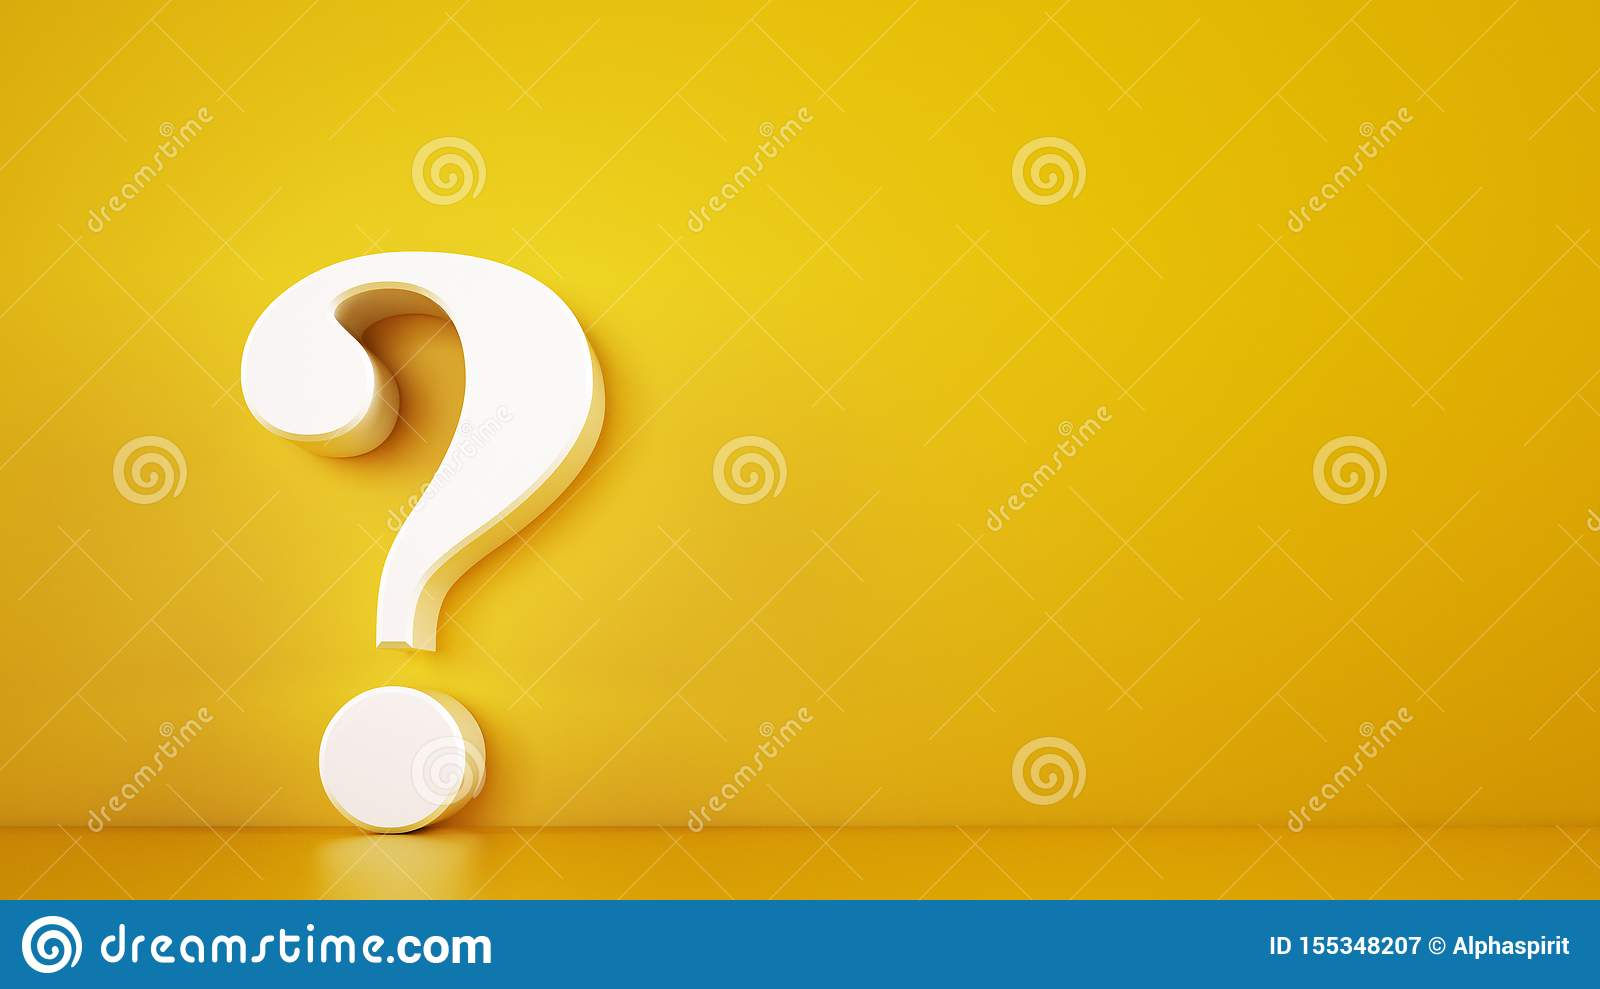 Big white question mark on a yellow background. 3D Rendering